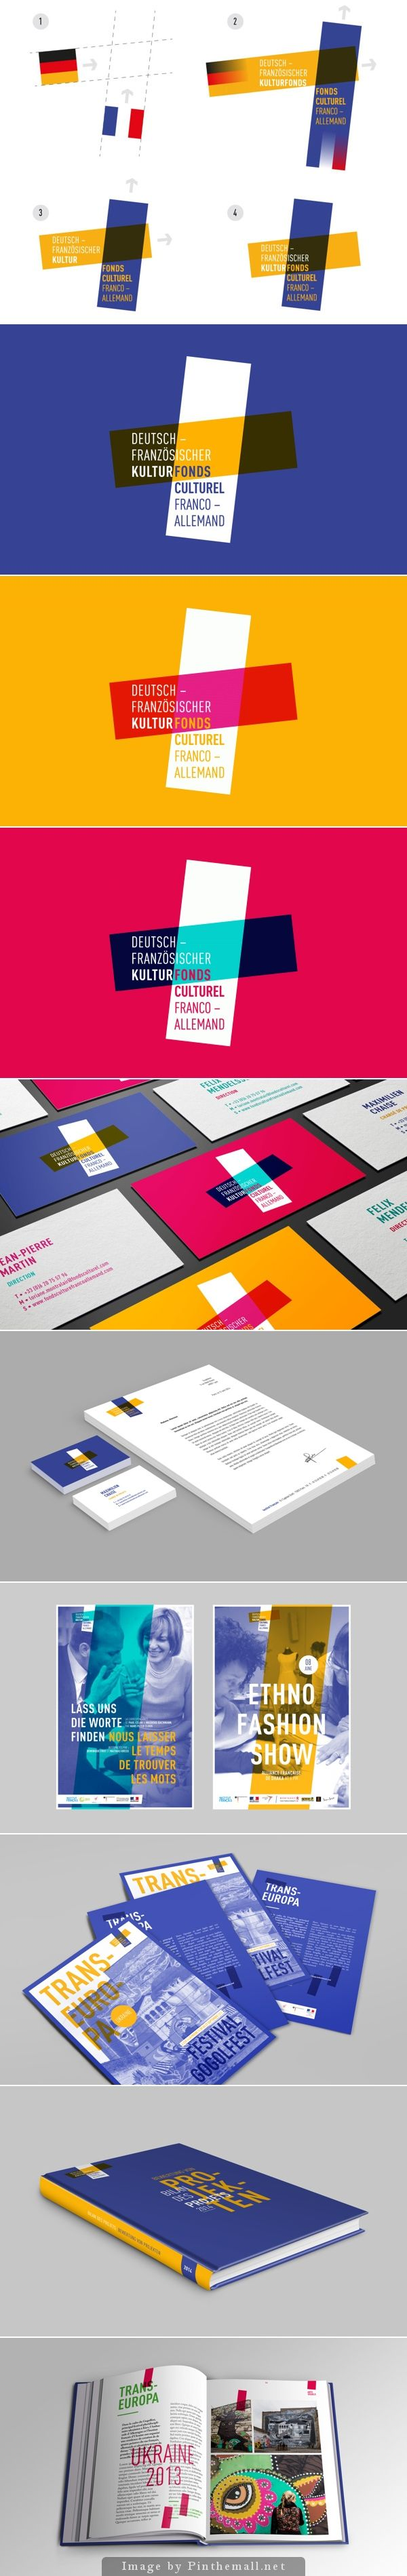 french german inspired logo / identity system / branding / stationary / graphic inspiration / color blending multiply